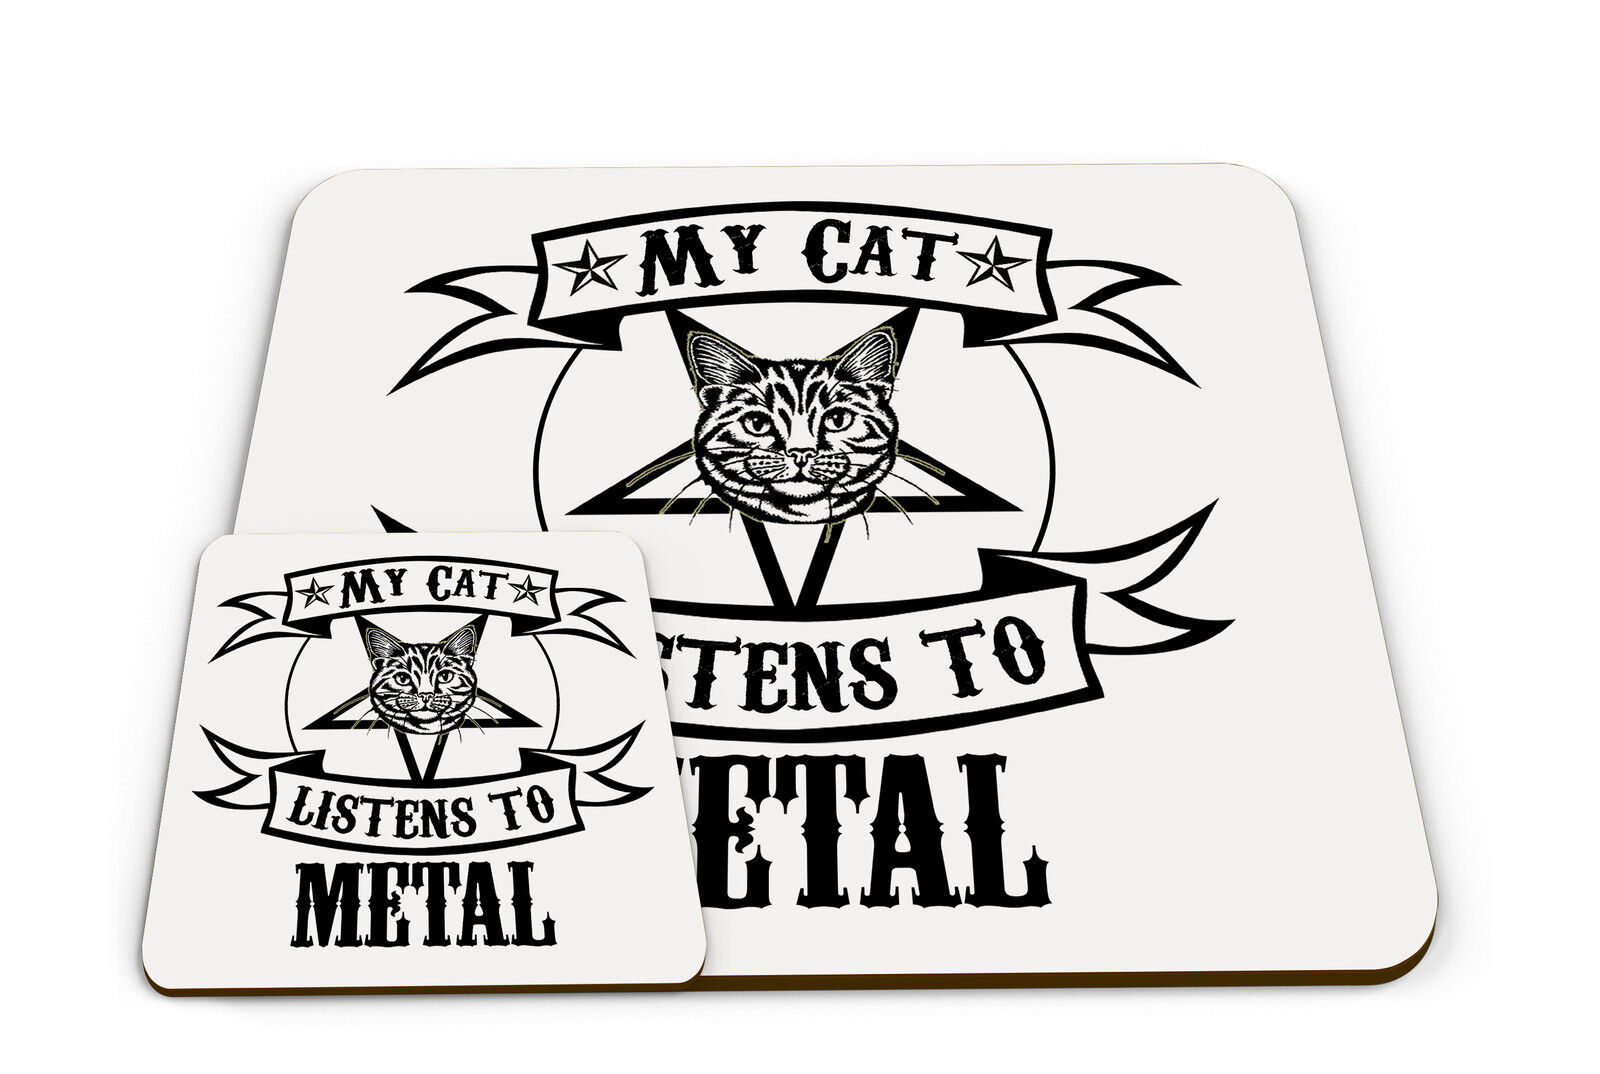 Set of My Cat Listens To Metal Funny Novelty Placemat & Coaster